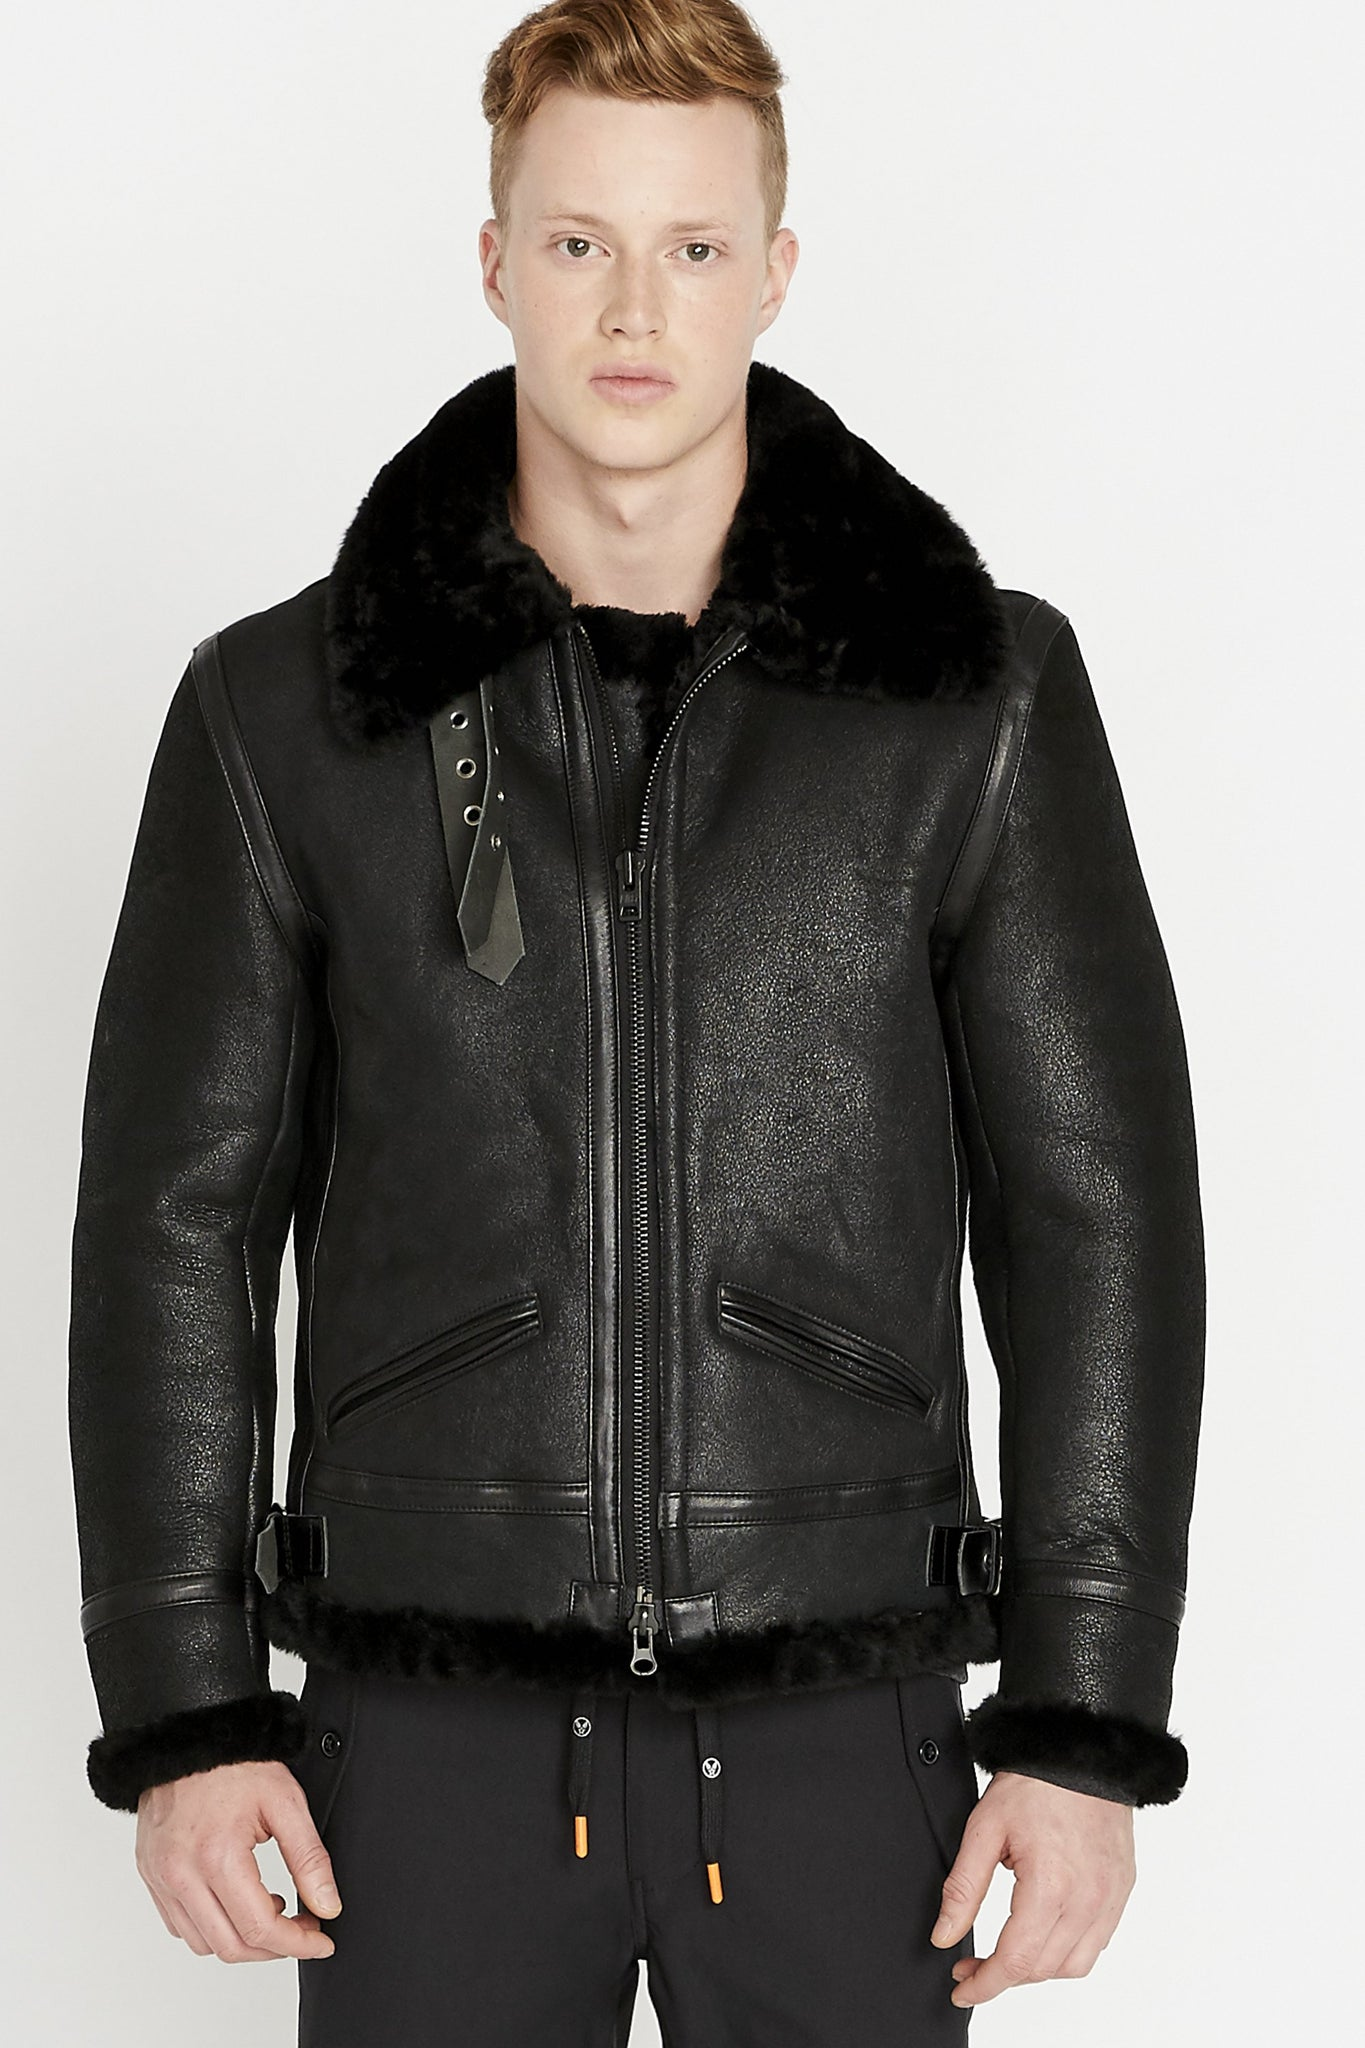 Front view of men wearing a fully zipped black sheepskin jacket with shearling fur lined collar sleeves and waist with two pockets